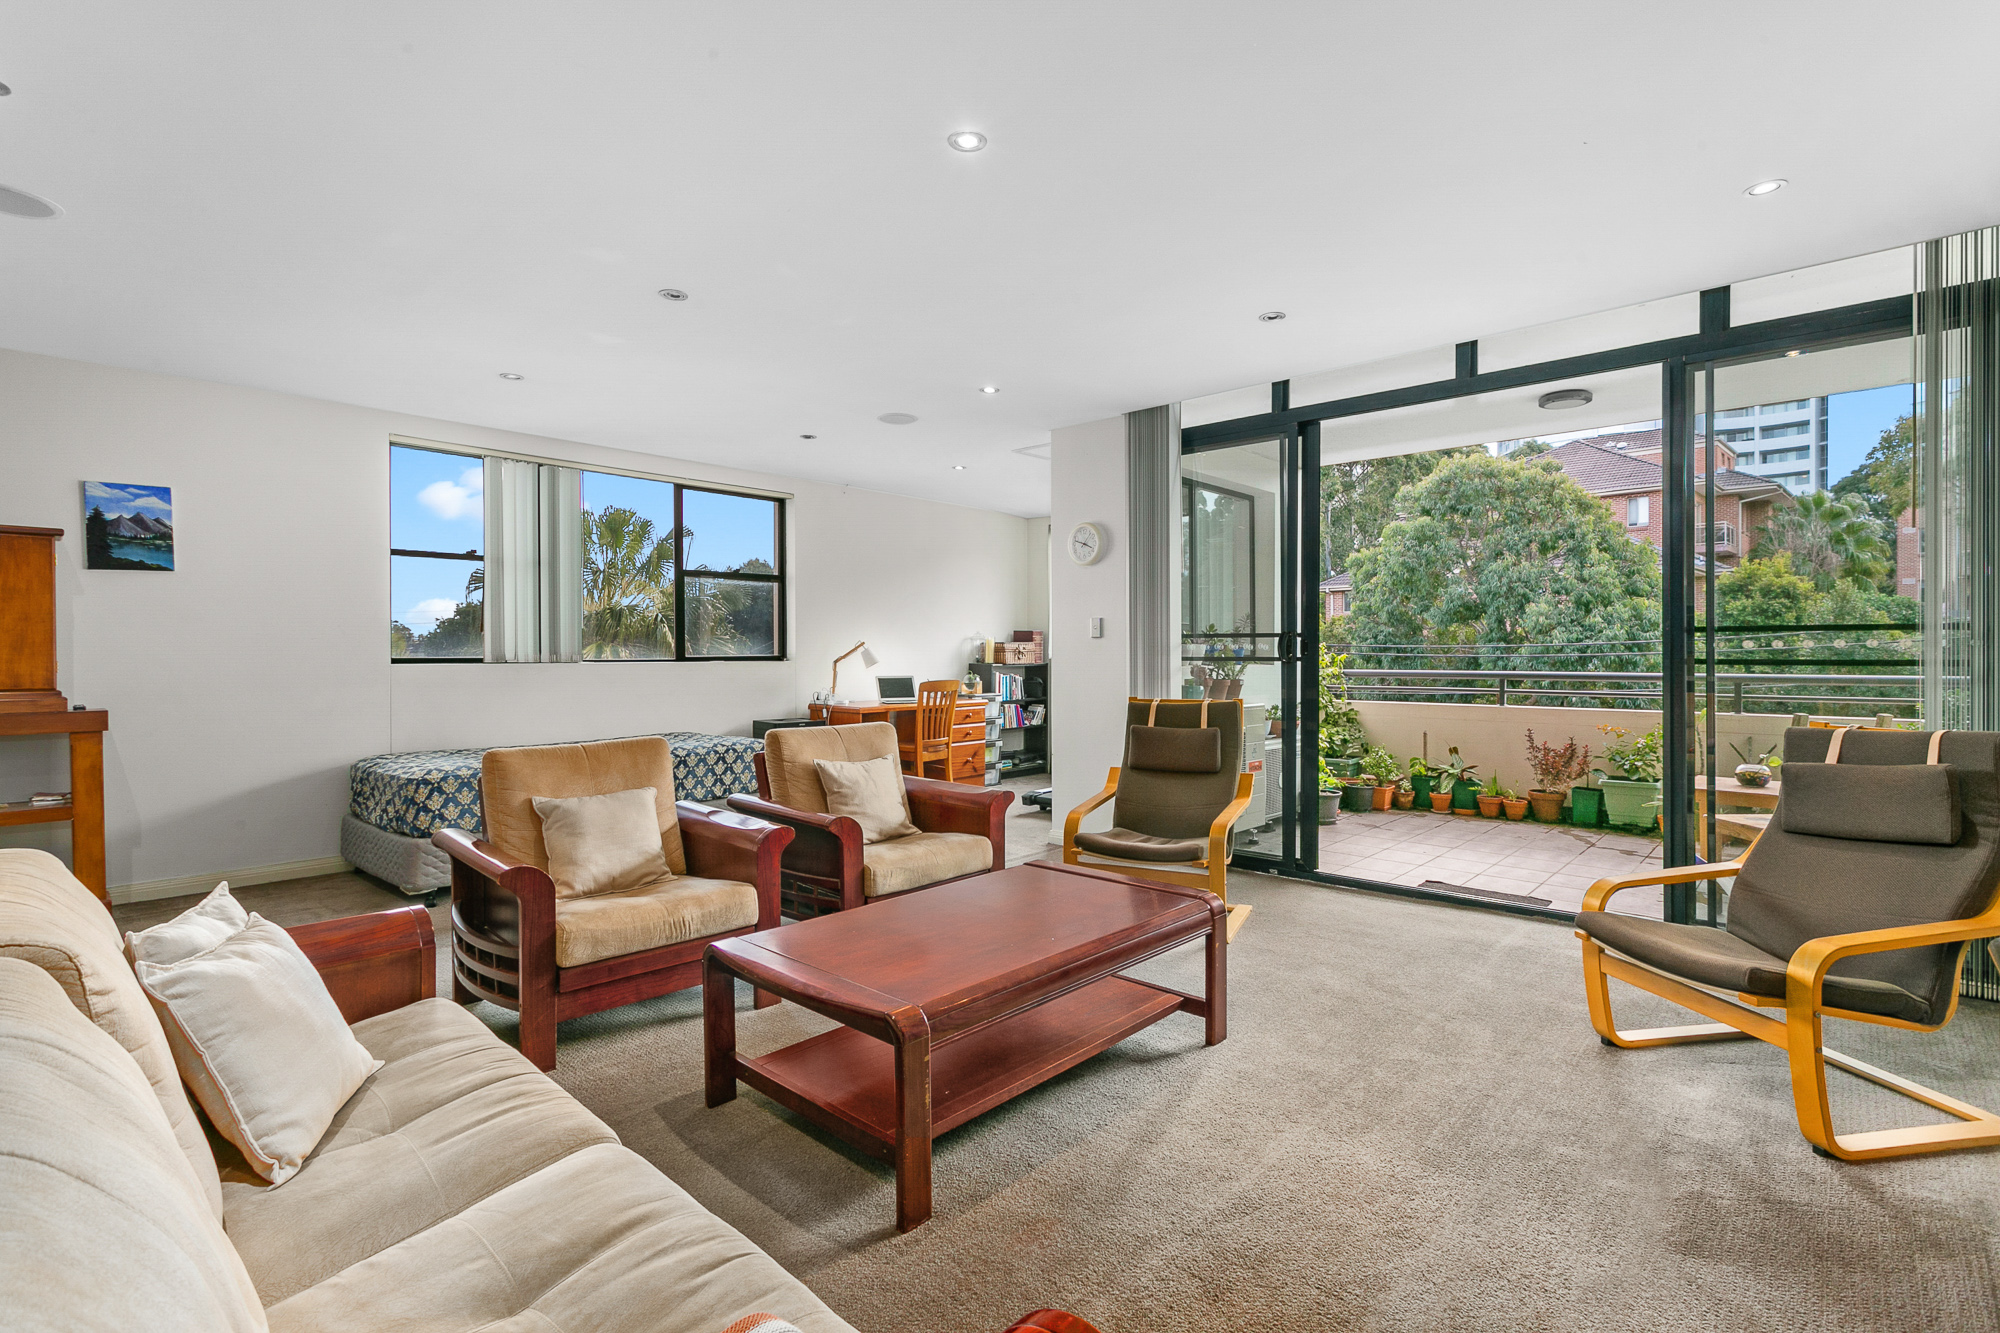 2 Bedrooms, Apartment, For Sale, Mercer , 2 Bathrooms, Listing ID 1483, Castle Hill , NSW, Australia, 2145,